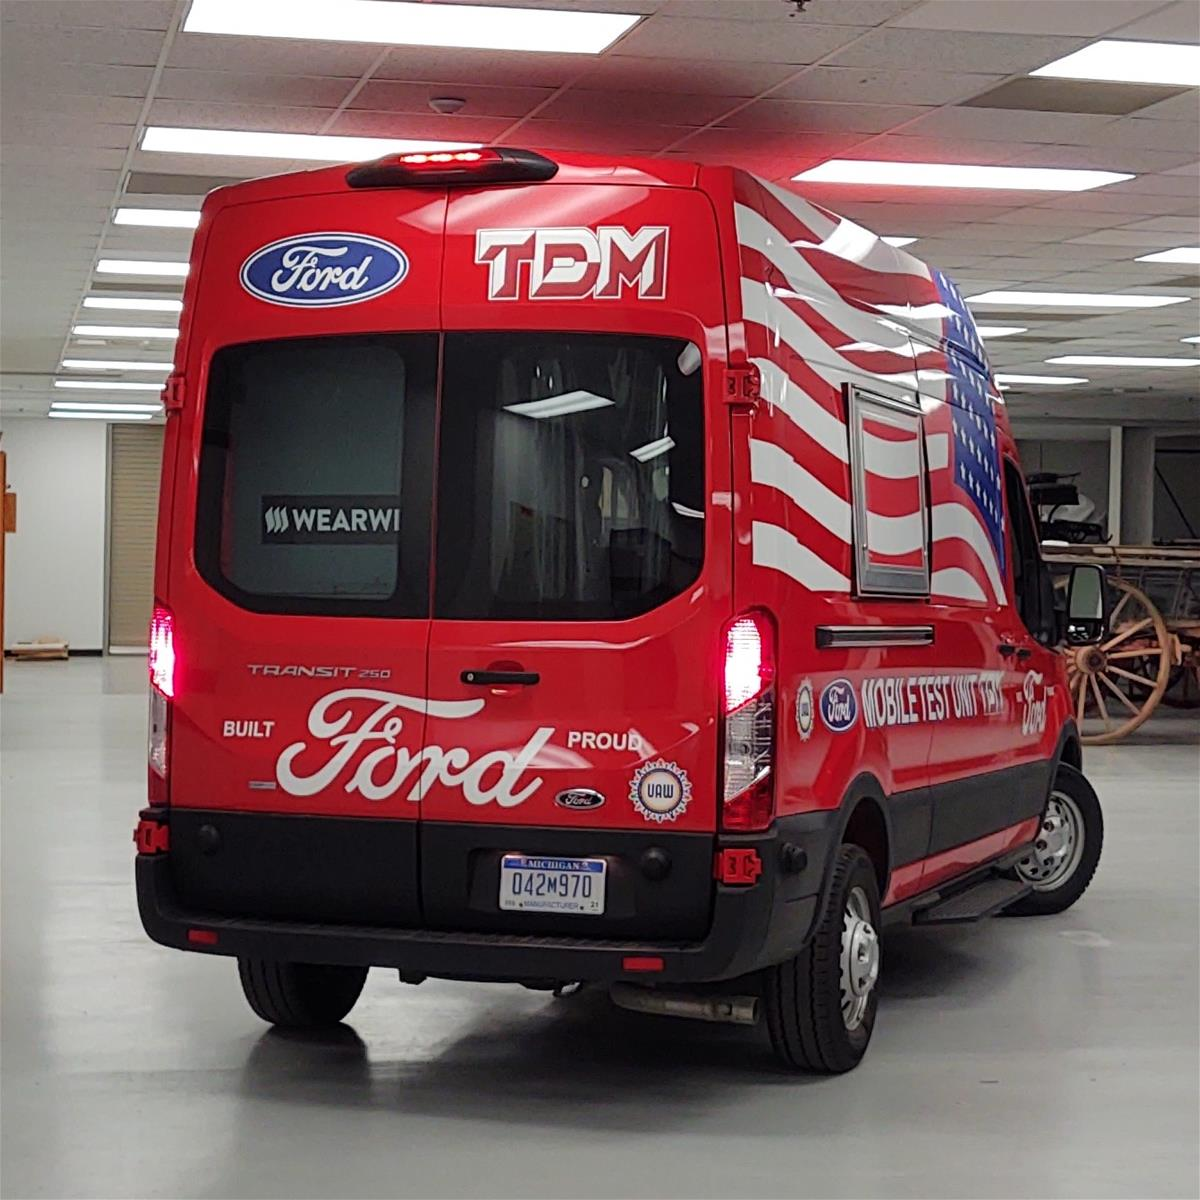 Rear view of red van with large back window; various text on vehicle and large American flag on visible side